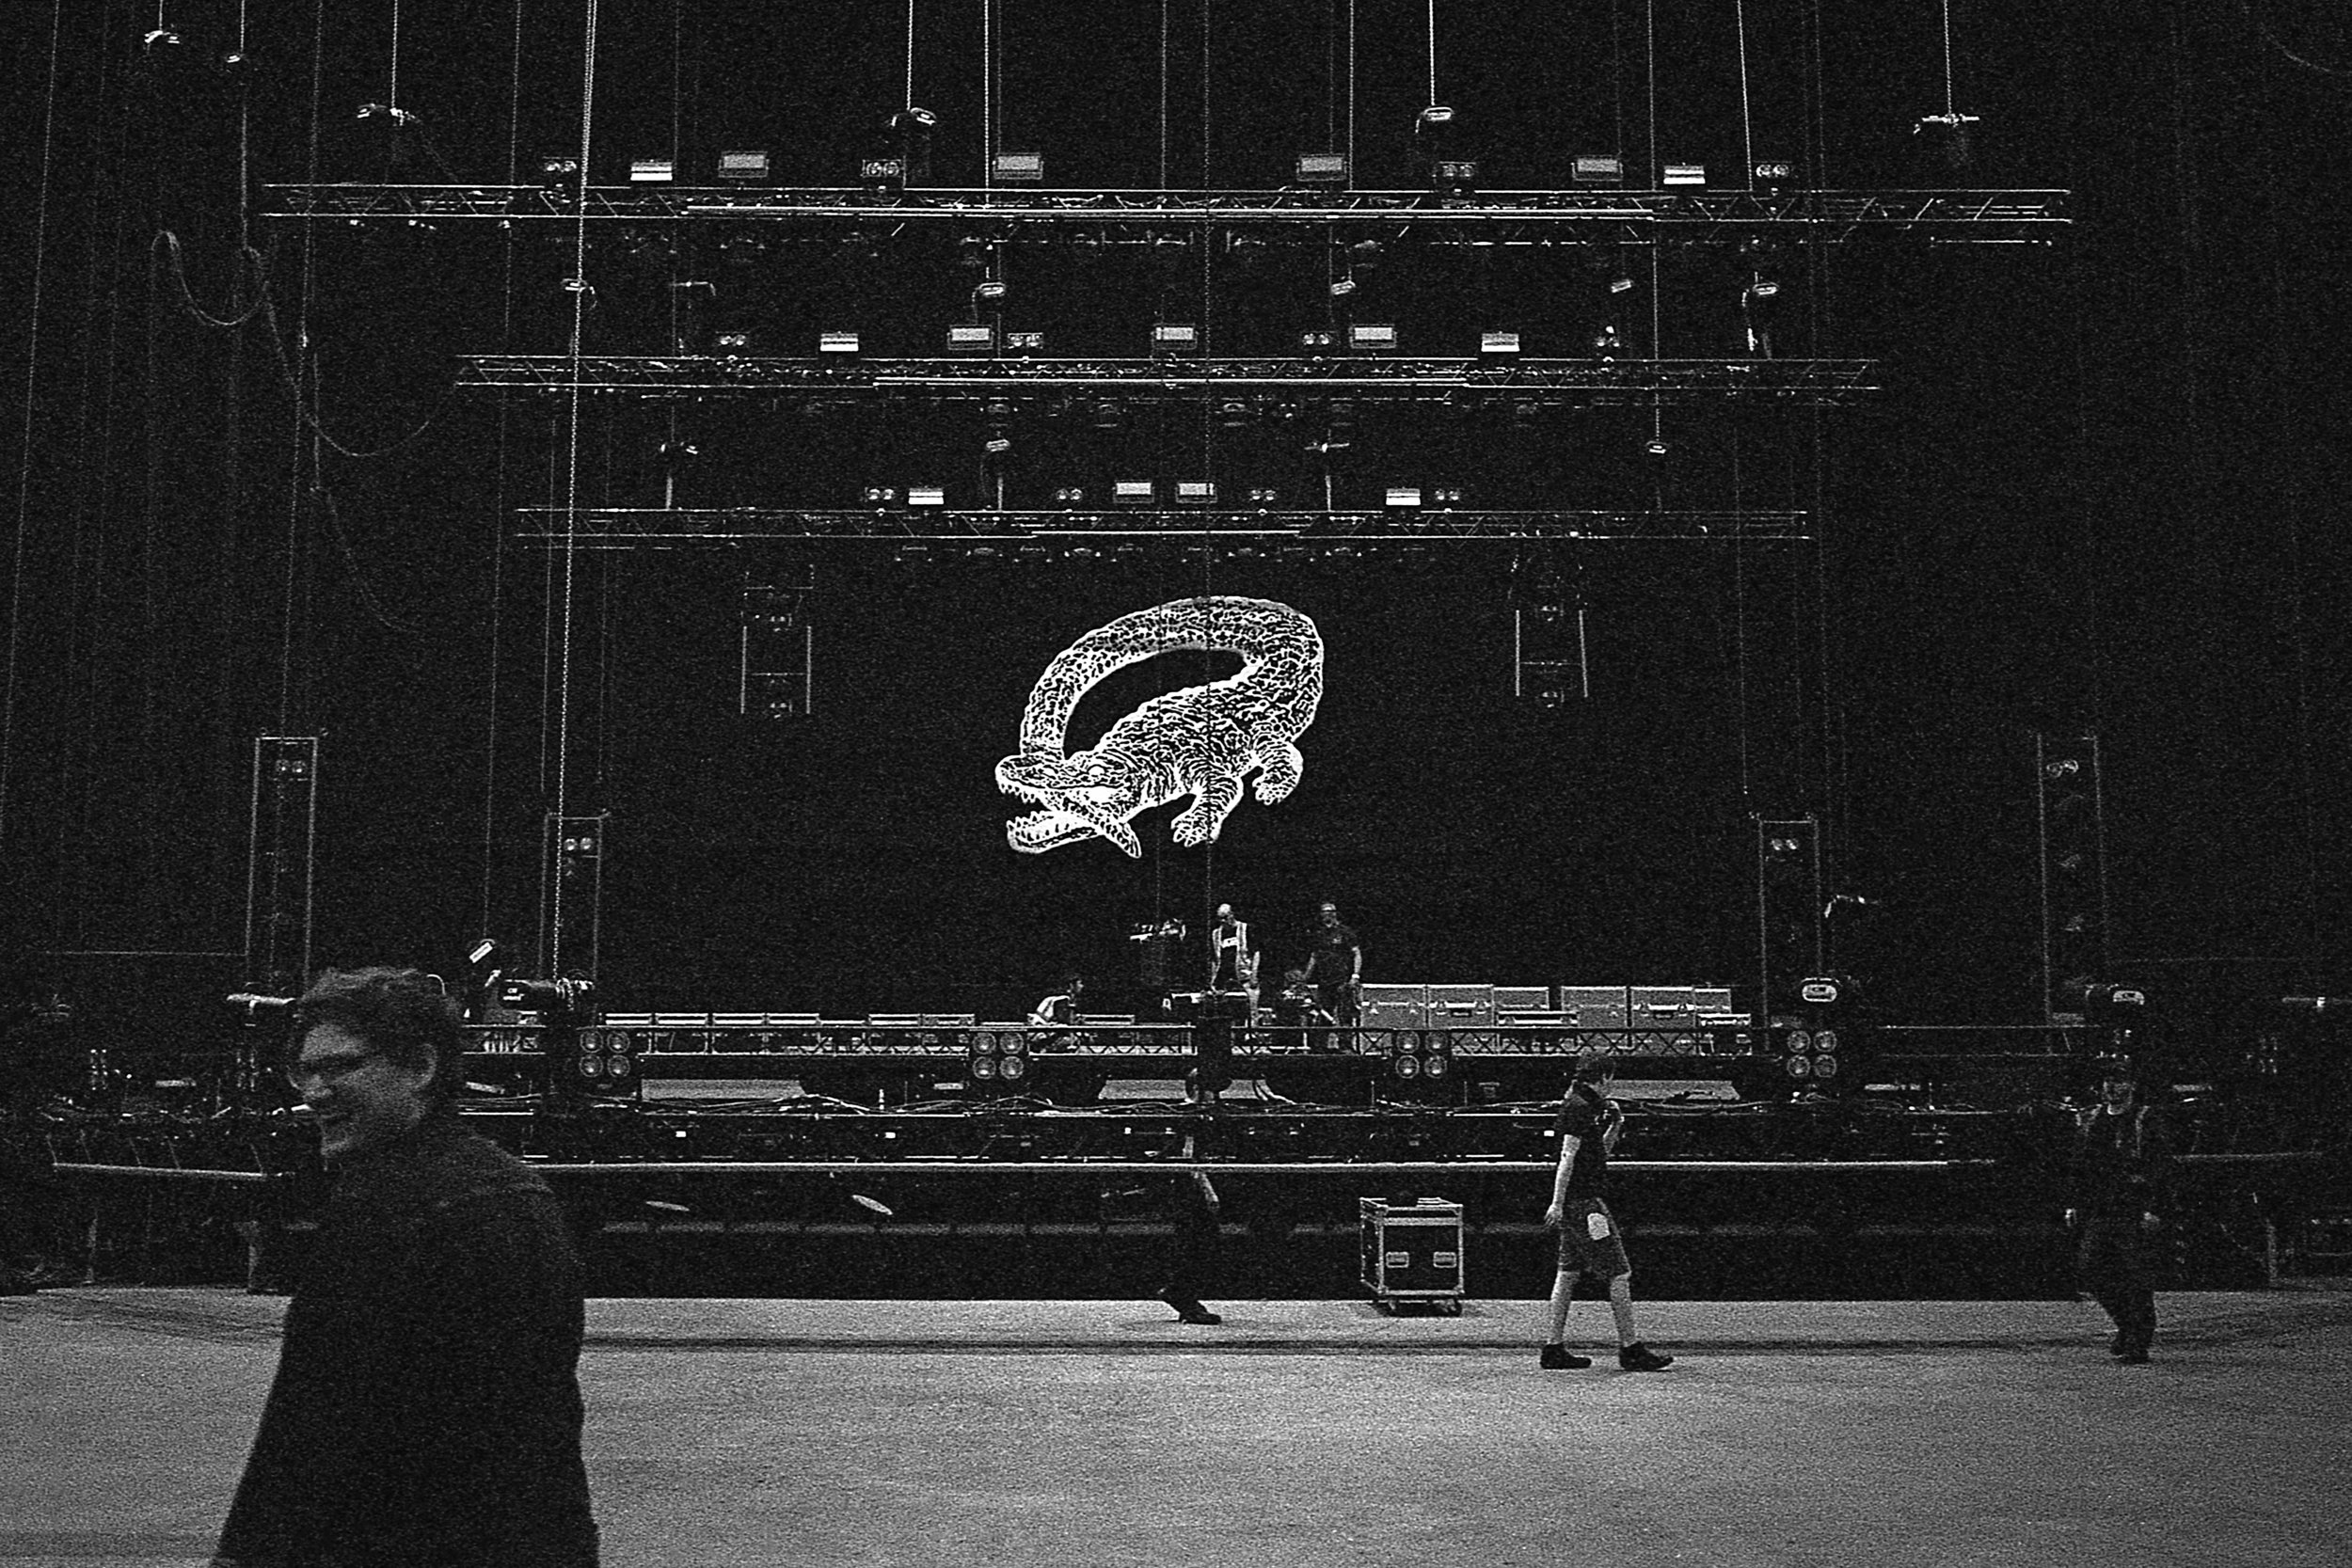 Liverpool Echo Arena load in, 2017.